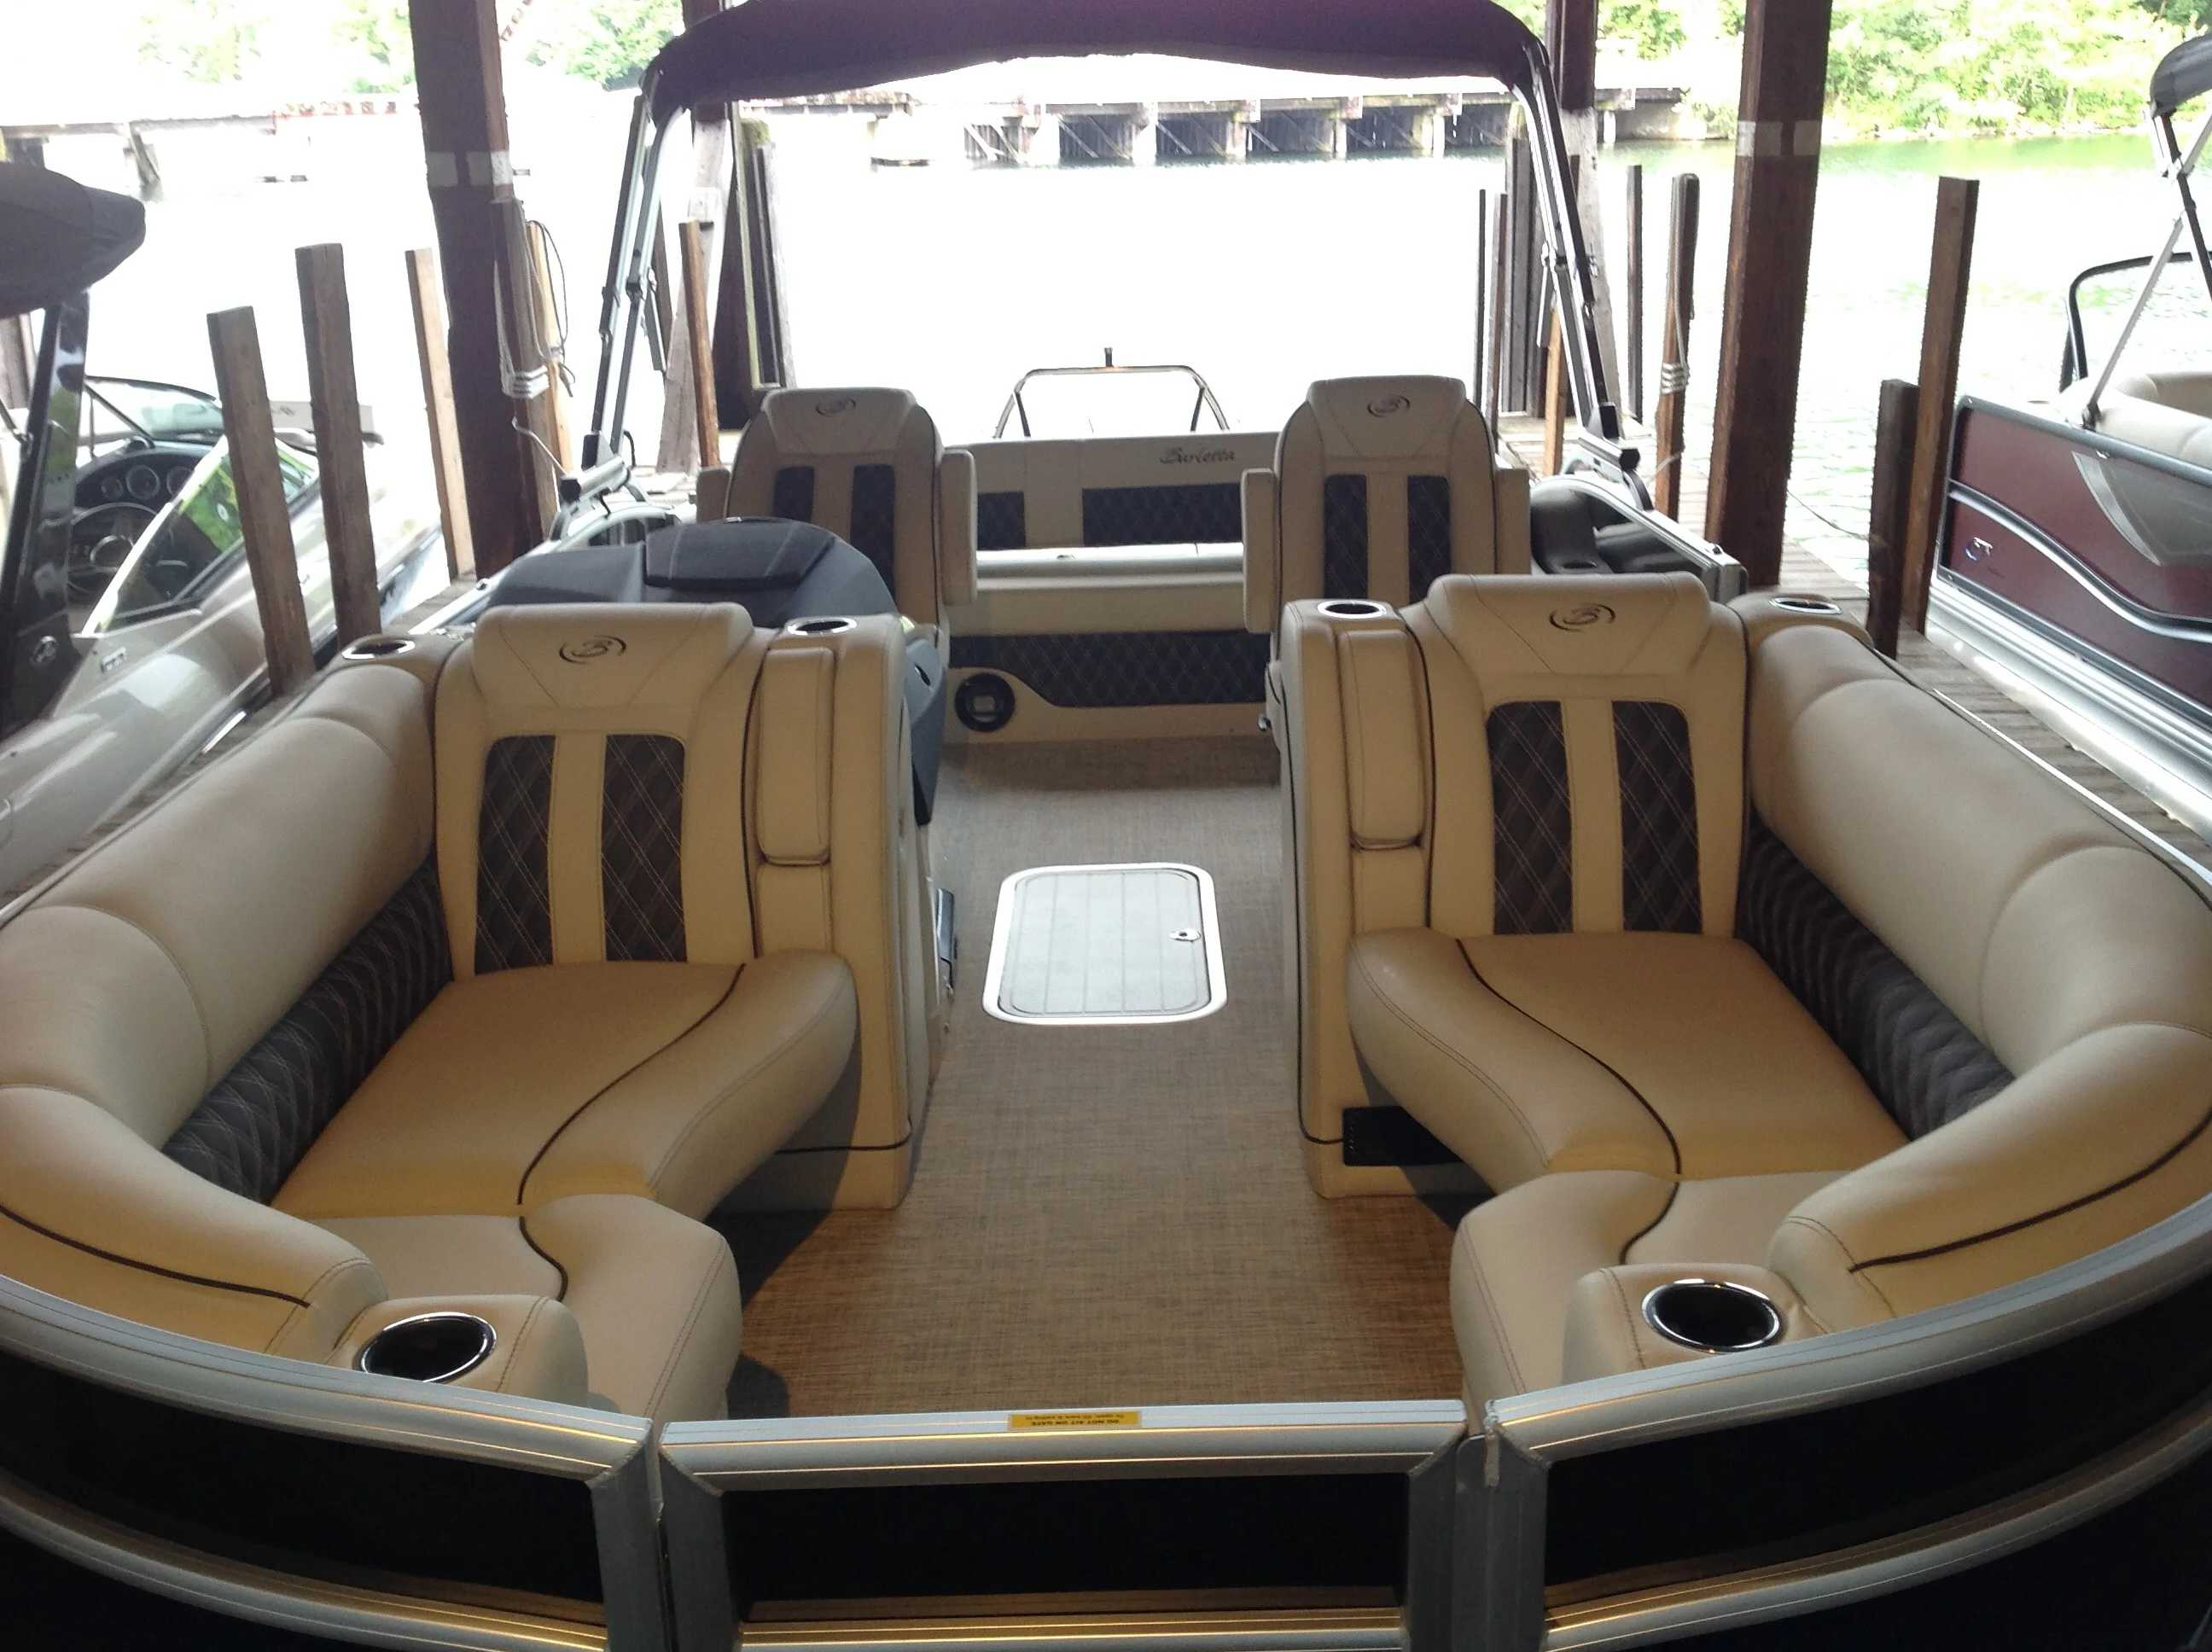 2021 Barletta boat for sale, model of the boat is L23UC & Image # 3 of 12